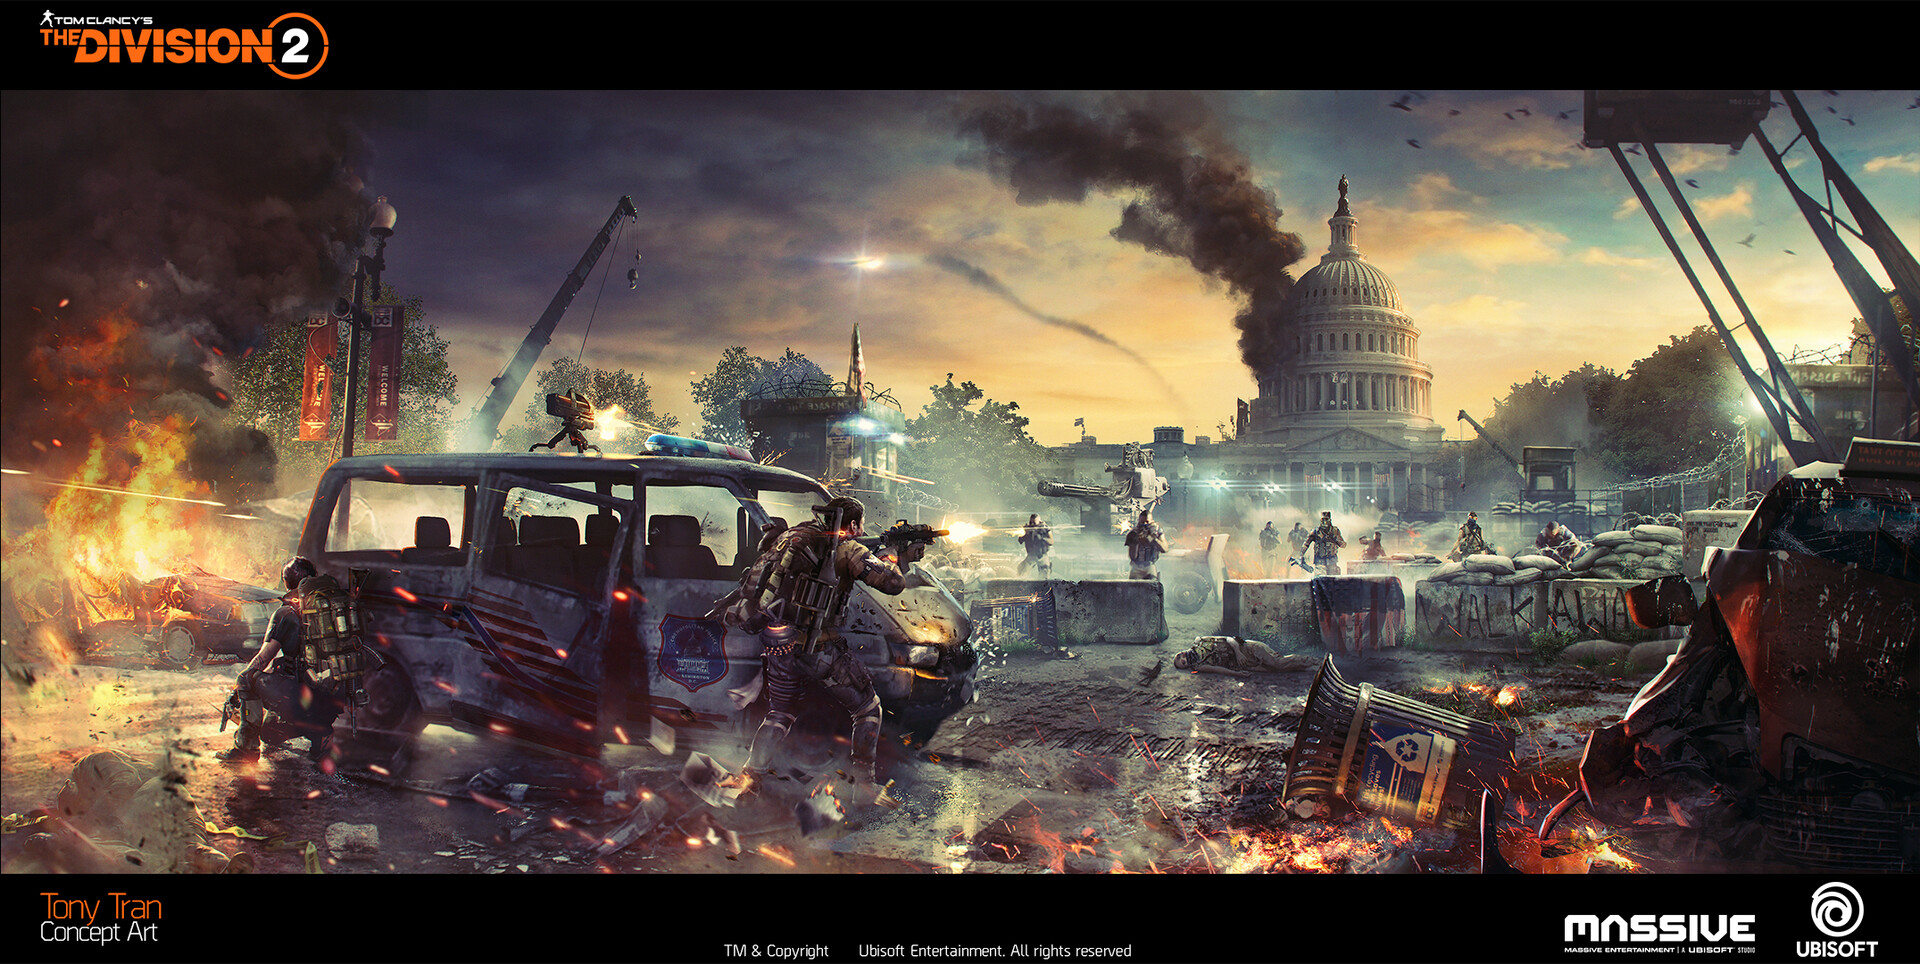 ArtStation - The Division 2 - Key Arts, Tony Tran